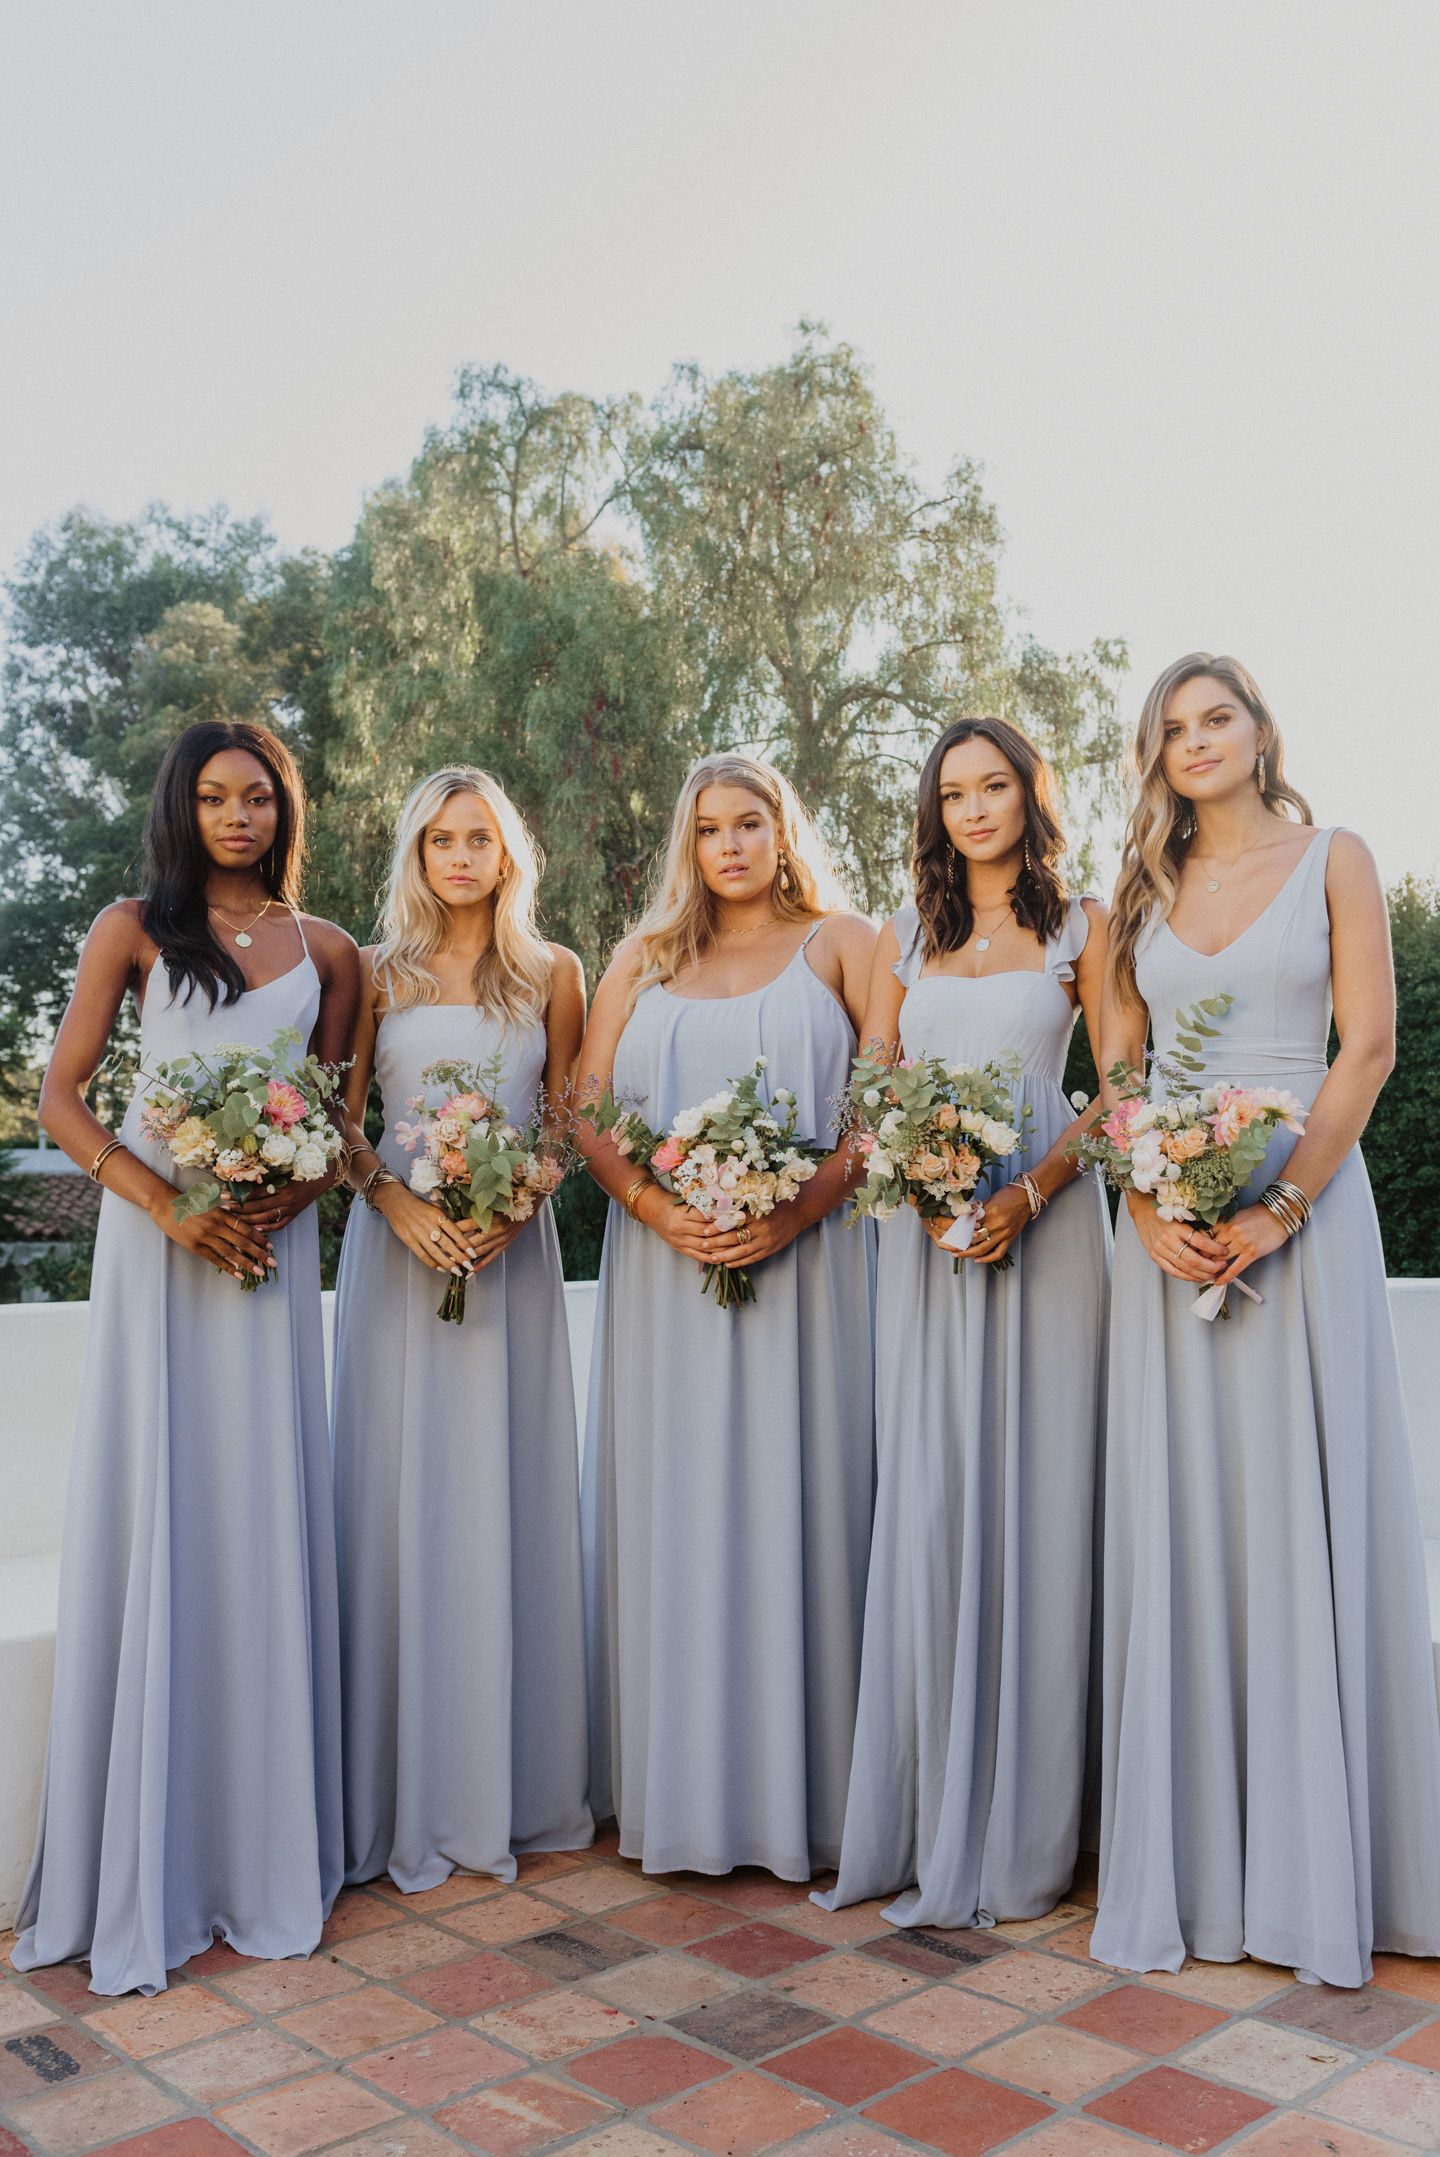 Best Dressed Guests In 2020 Wedding Guest Dress Wedding Attire Guest Bridesmaid Dresses